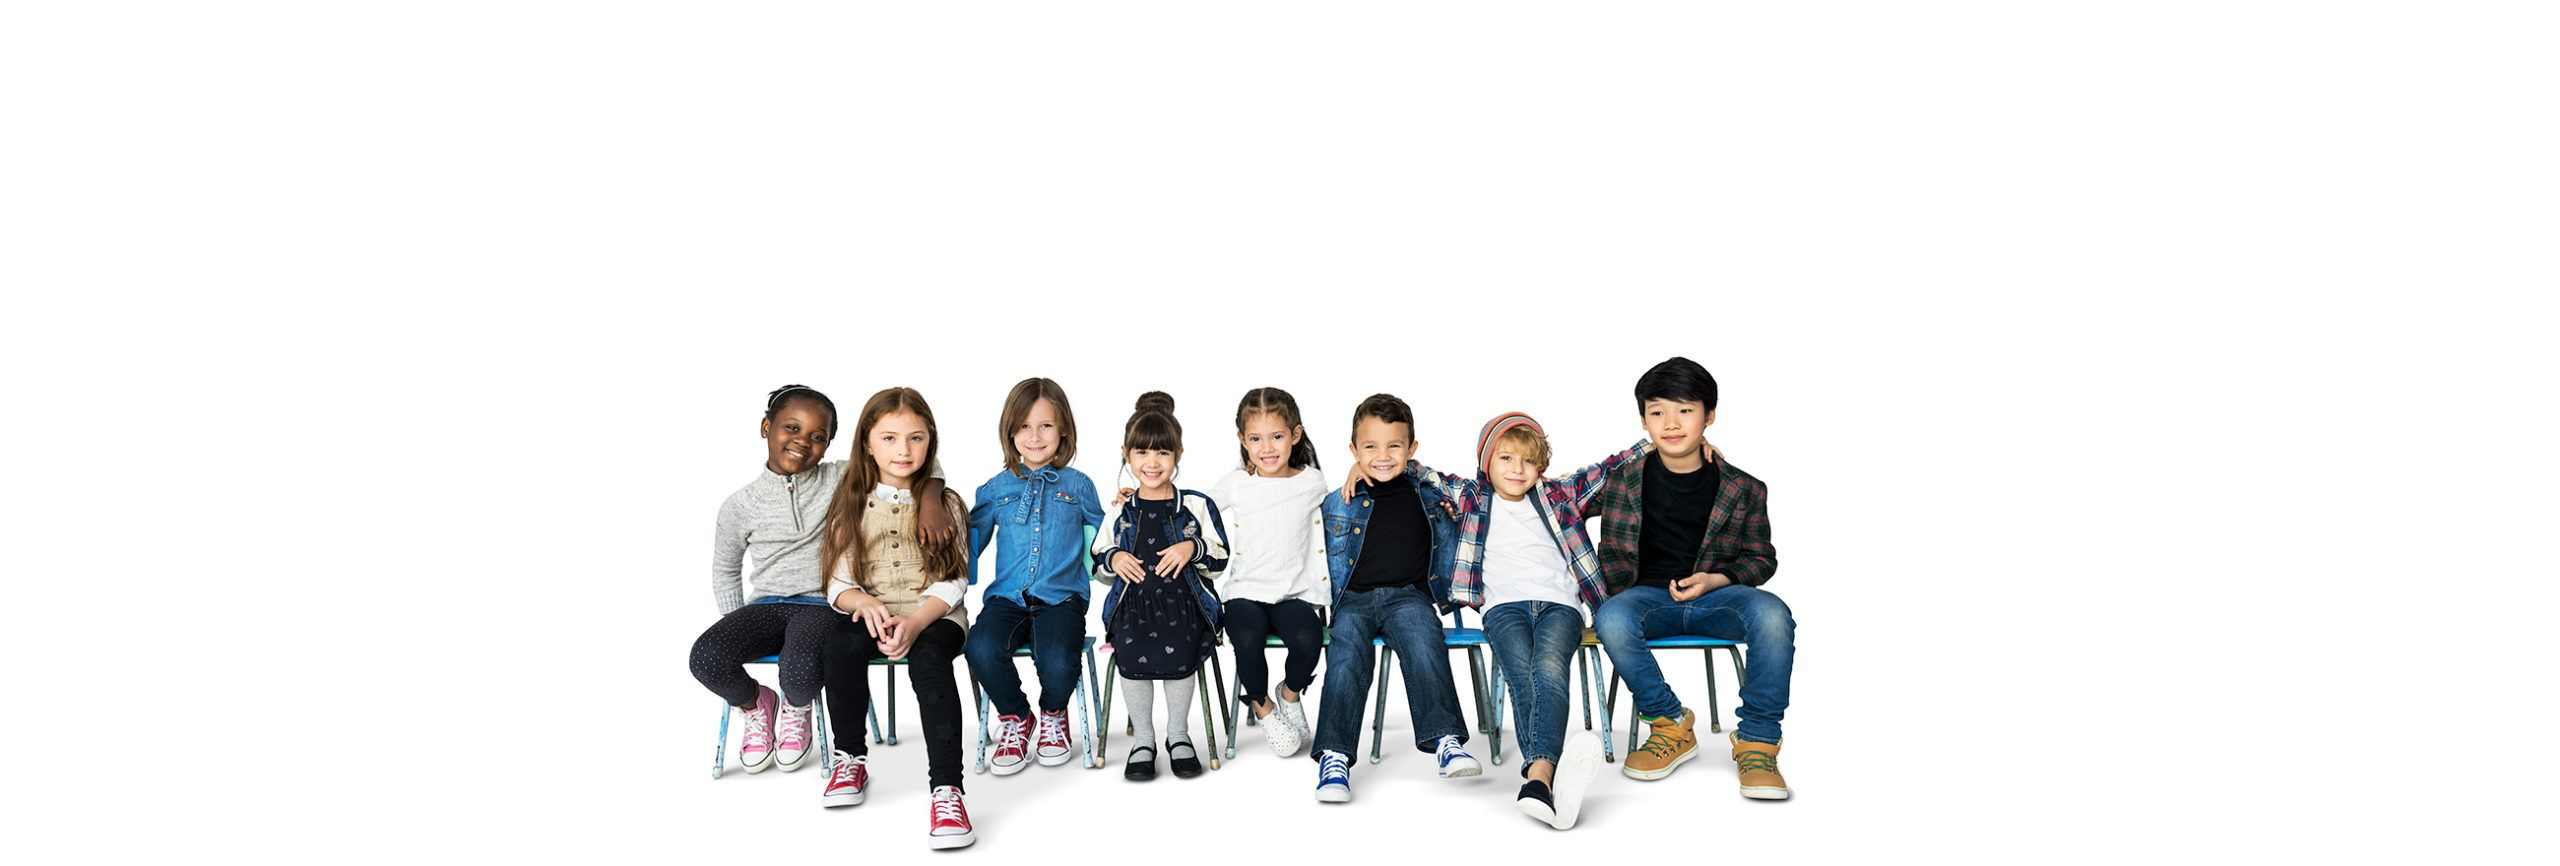 group-kids-sitting-togetherness-happiness-smiling-white-blackground